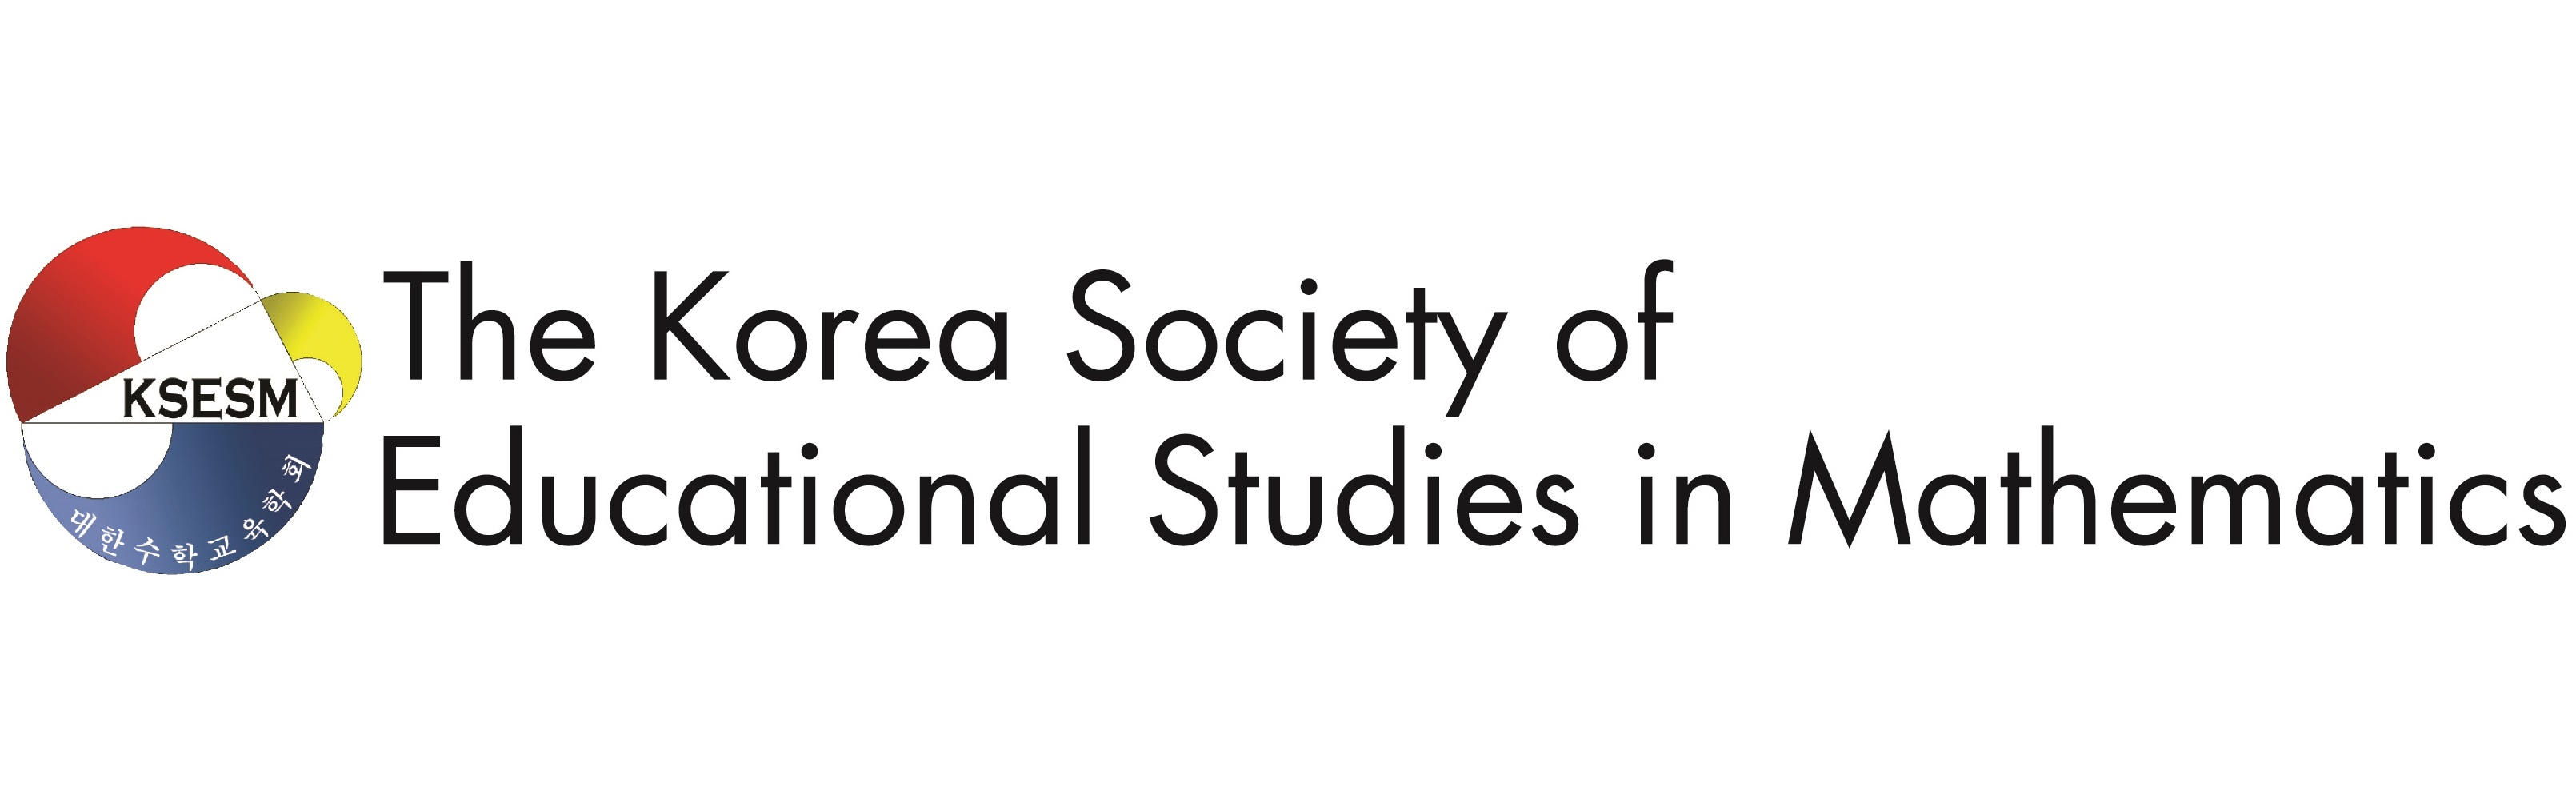 The Korea Society Of Educational Studies In Mathematics